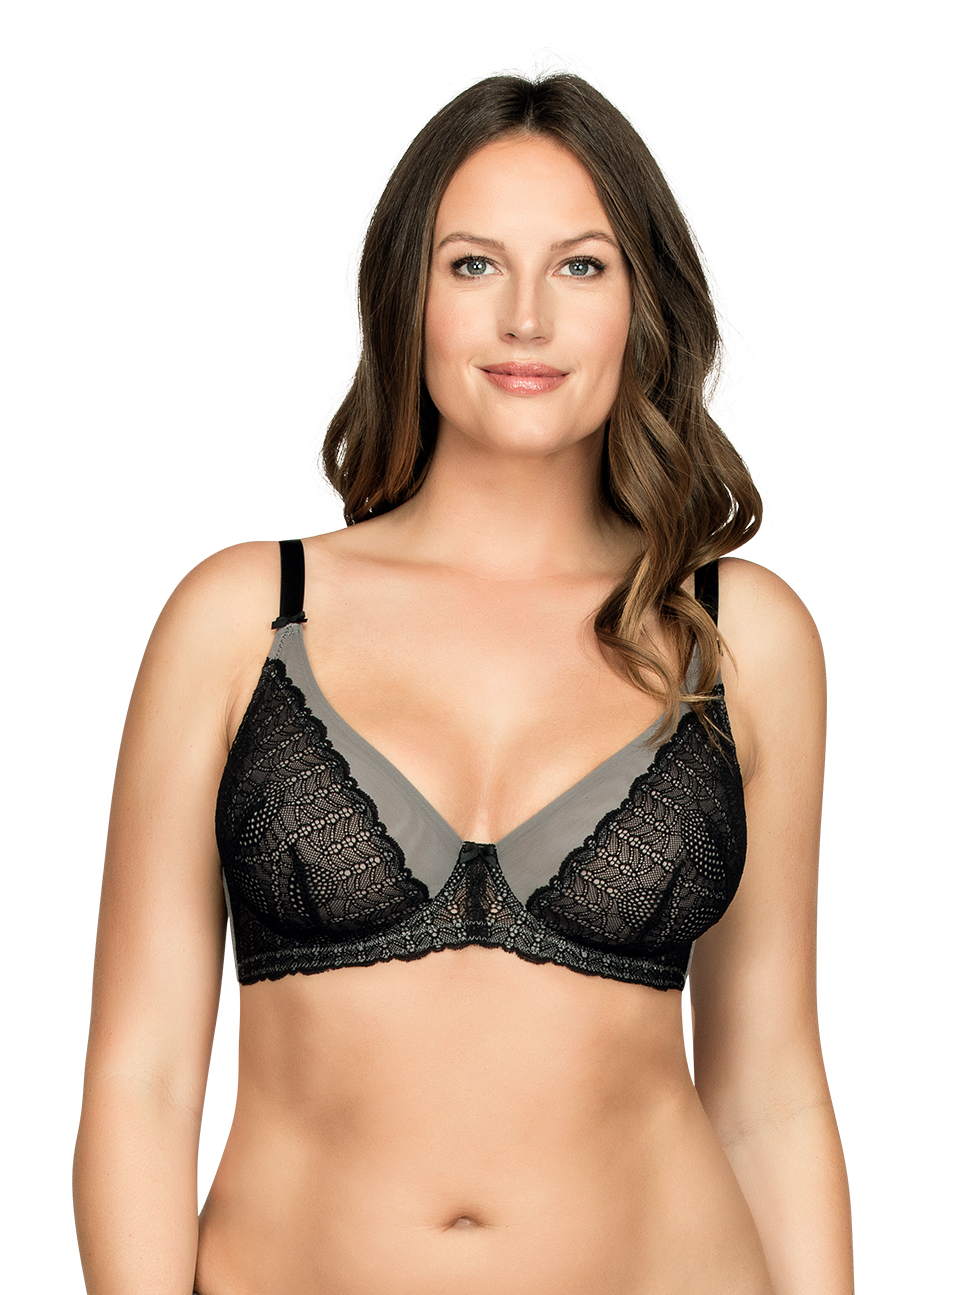 PARFAIT Vanna UnlinedWireBraP5702 BlackGray Front1 - Vanna Unlined Wire Bra Black w Gray P5702